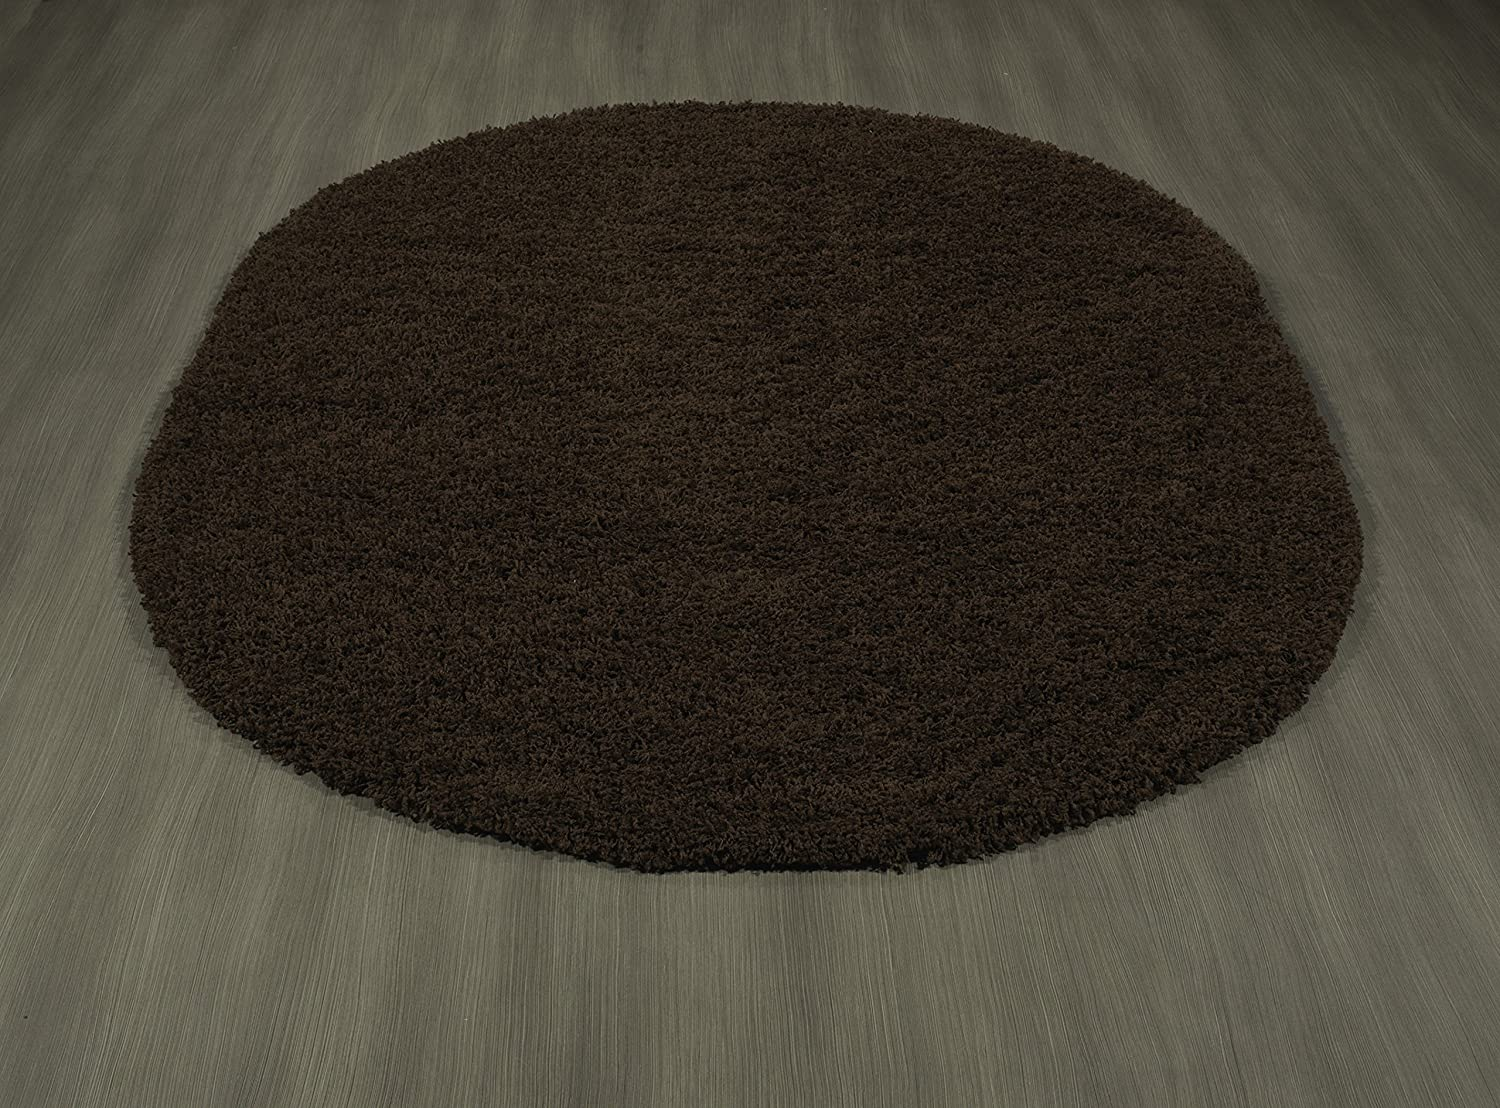 Sweet Home Stores Cozy Shag Collection Solid Shag Rug Contemporary Living /& Bedroom Soft Shaggy Area Rug Beige 39 L x 60 W